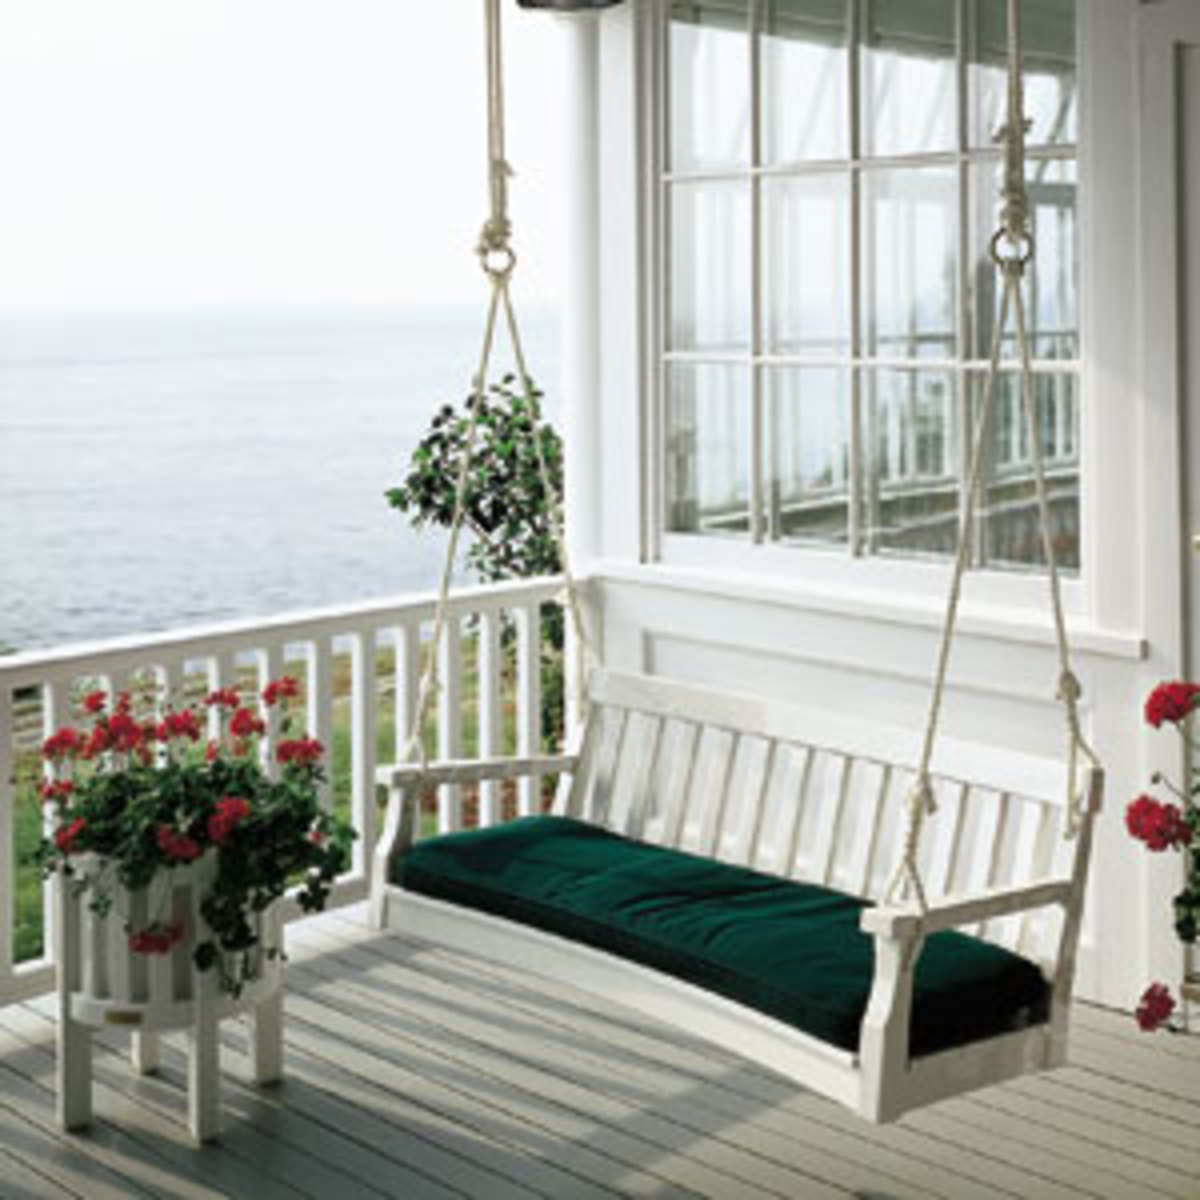 Add a front porch swing with a colorful cushion!